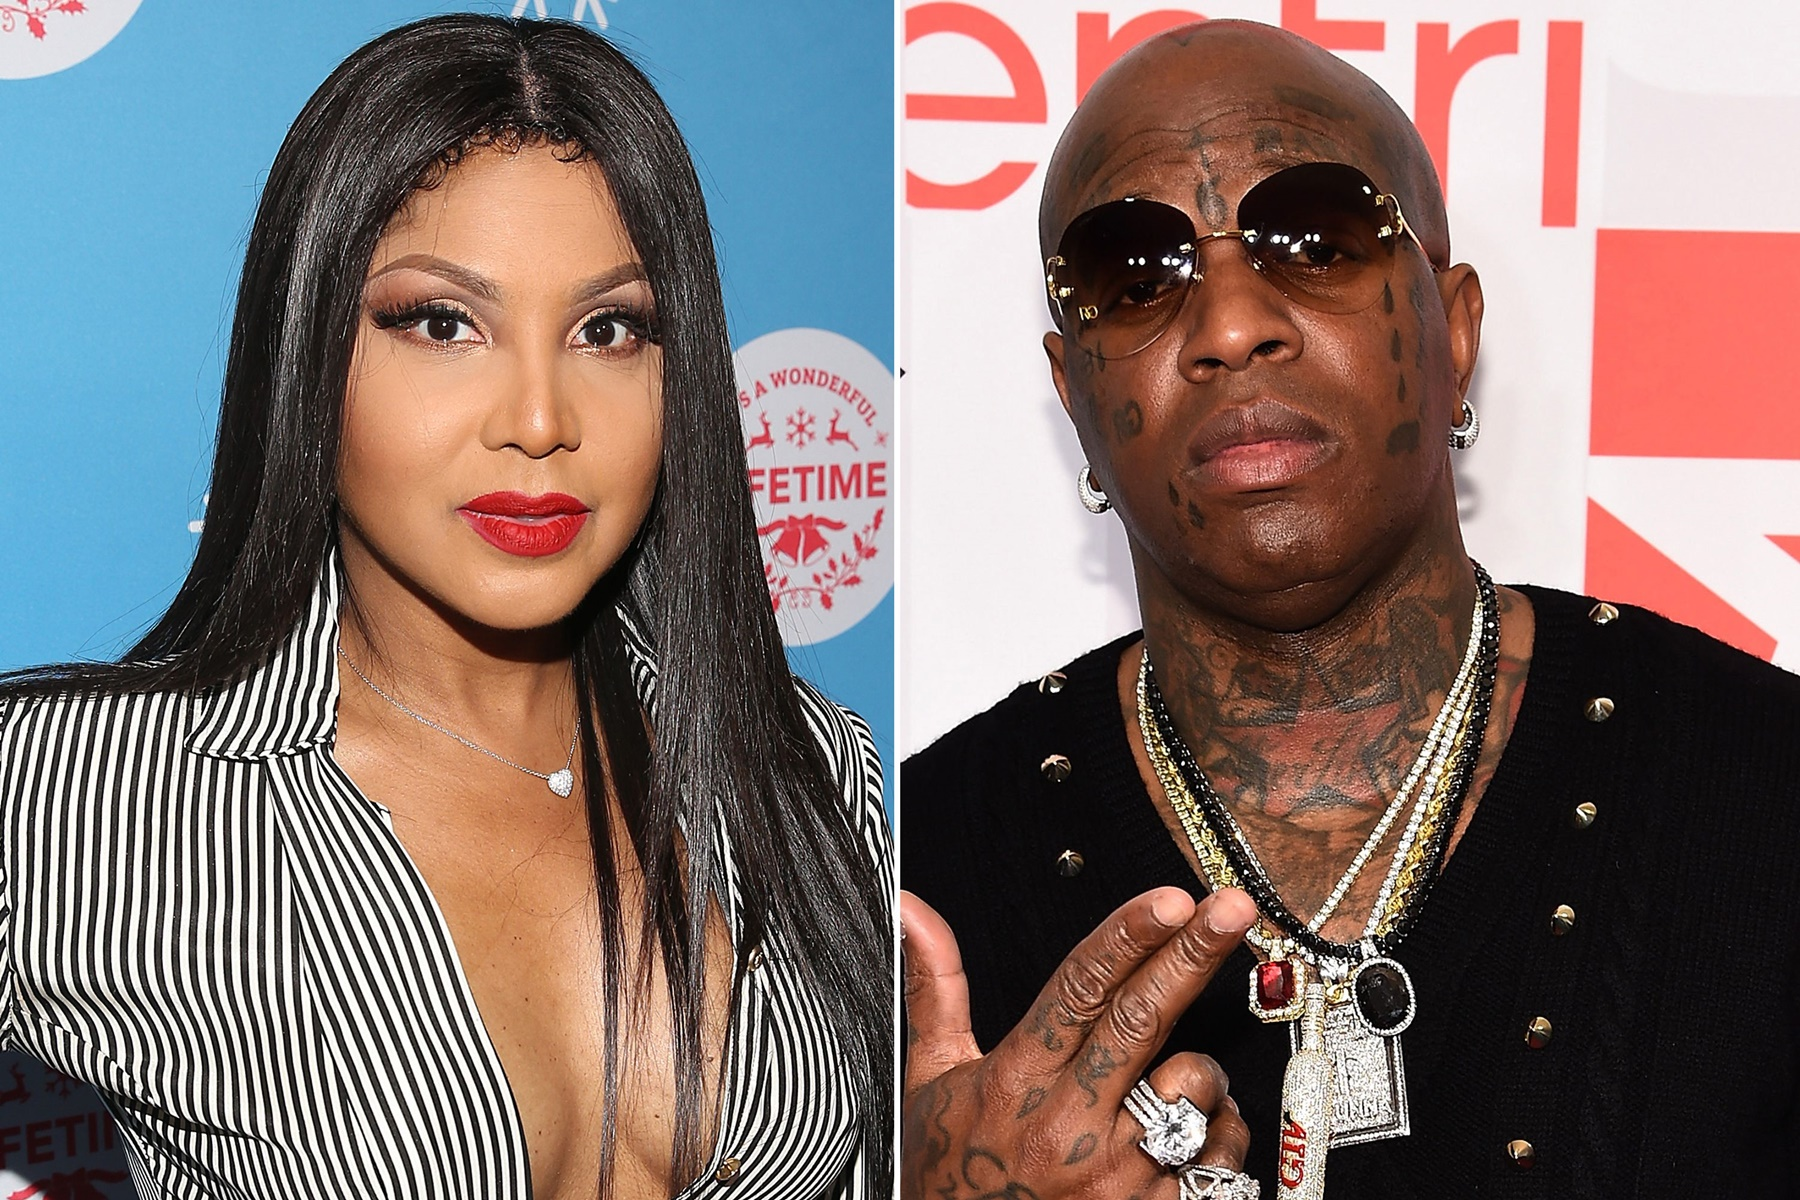 toni-braxton-is-getting-her-wish-birdman-makes-big-announcement-and-tamar-is-over-the-moon